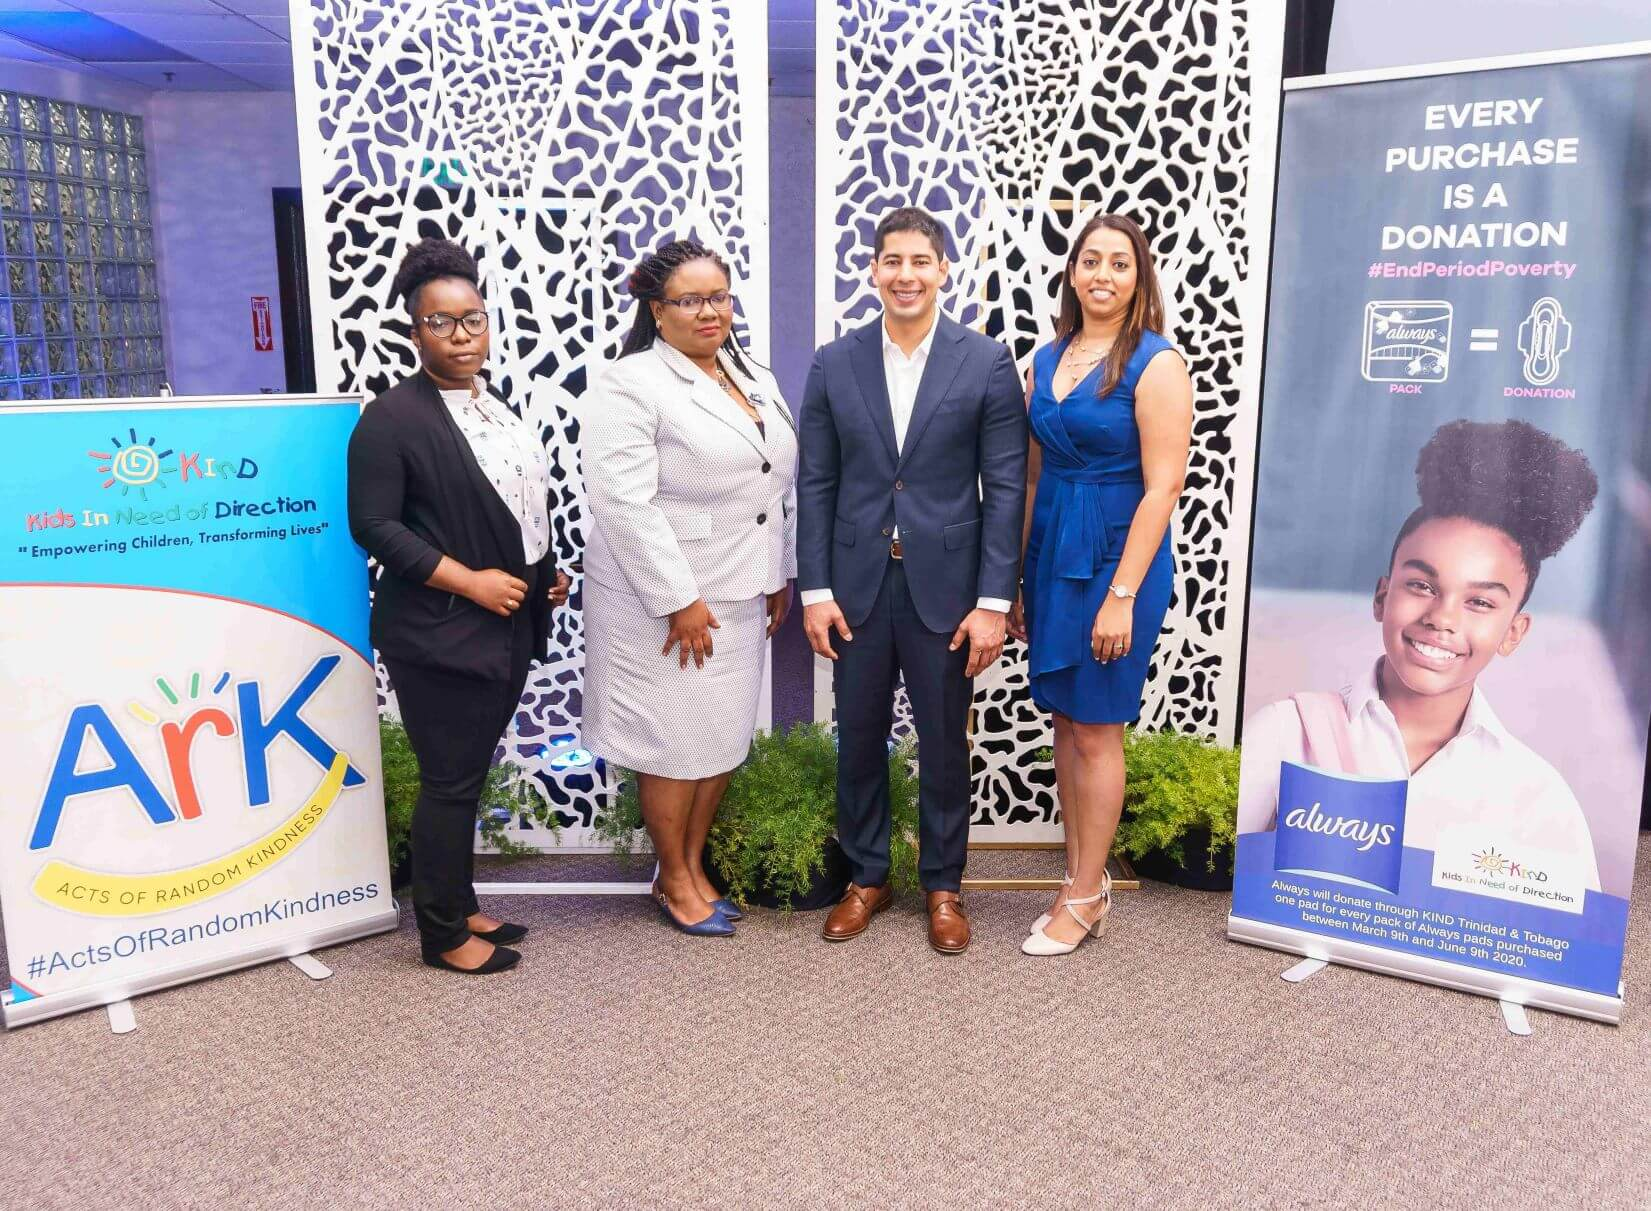 From left to right – Calive Joseph, Marketing Officer, Kids in Need of Direction; Simone Noel Haynes, School Supervisor III, POS Education District, Ministry of Education; Daniel Hurtado, Procter & Gamble Category Trade Manager and Reshma Geawan, AMCO Business Unit Head for P&G Brands.